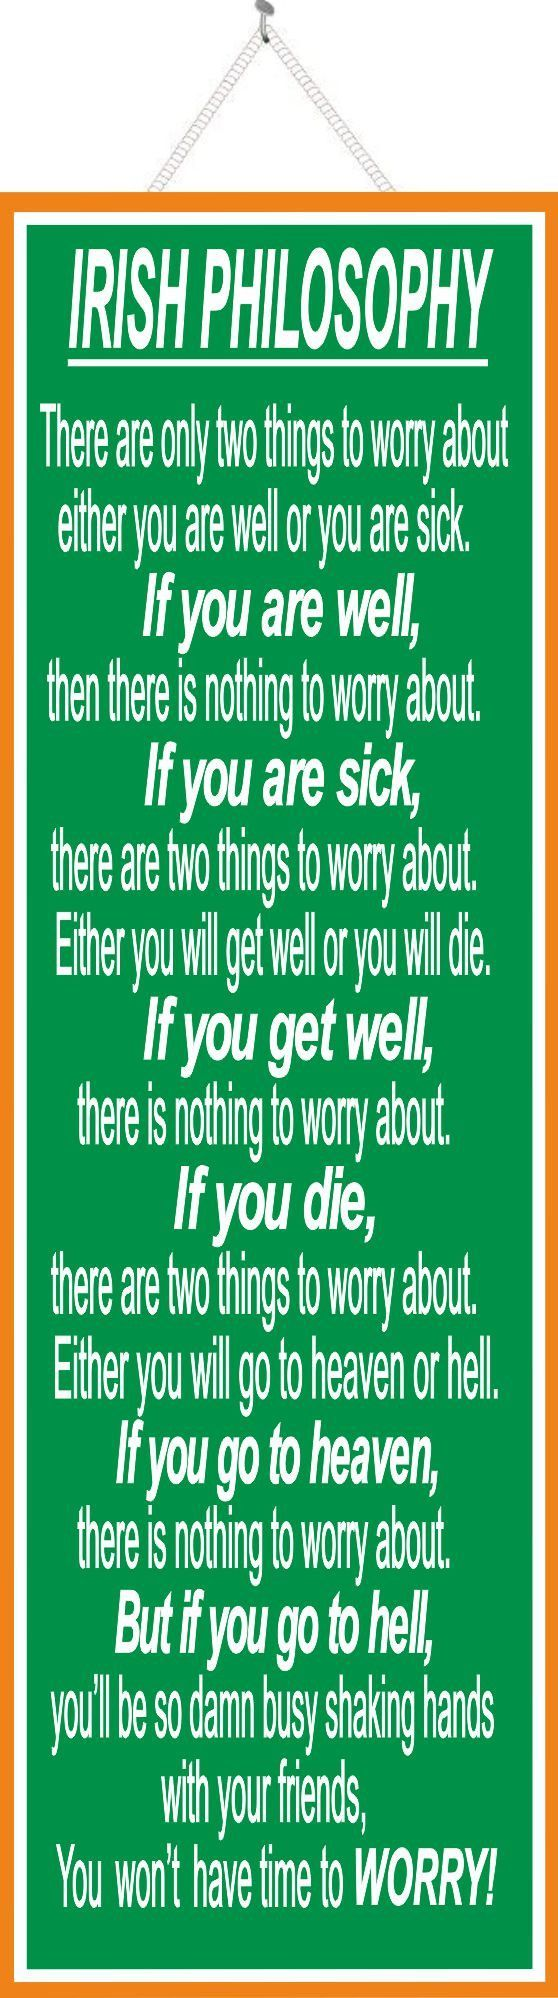 Irish Philosophy Quote Sign with Green Background, White Text and Orange Border